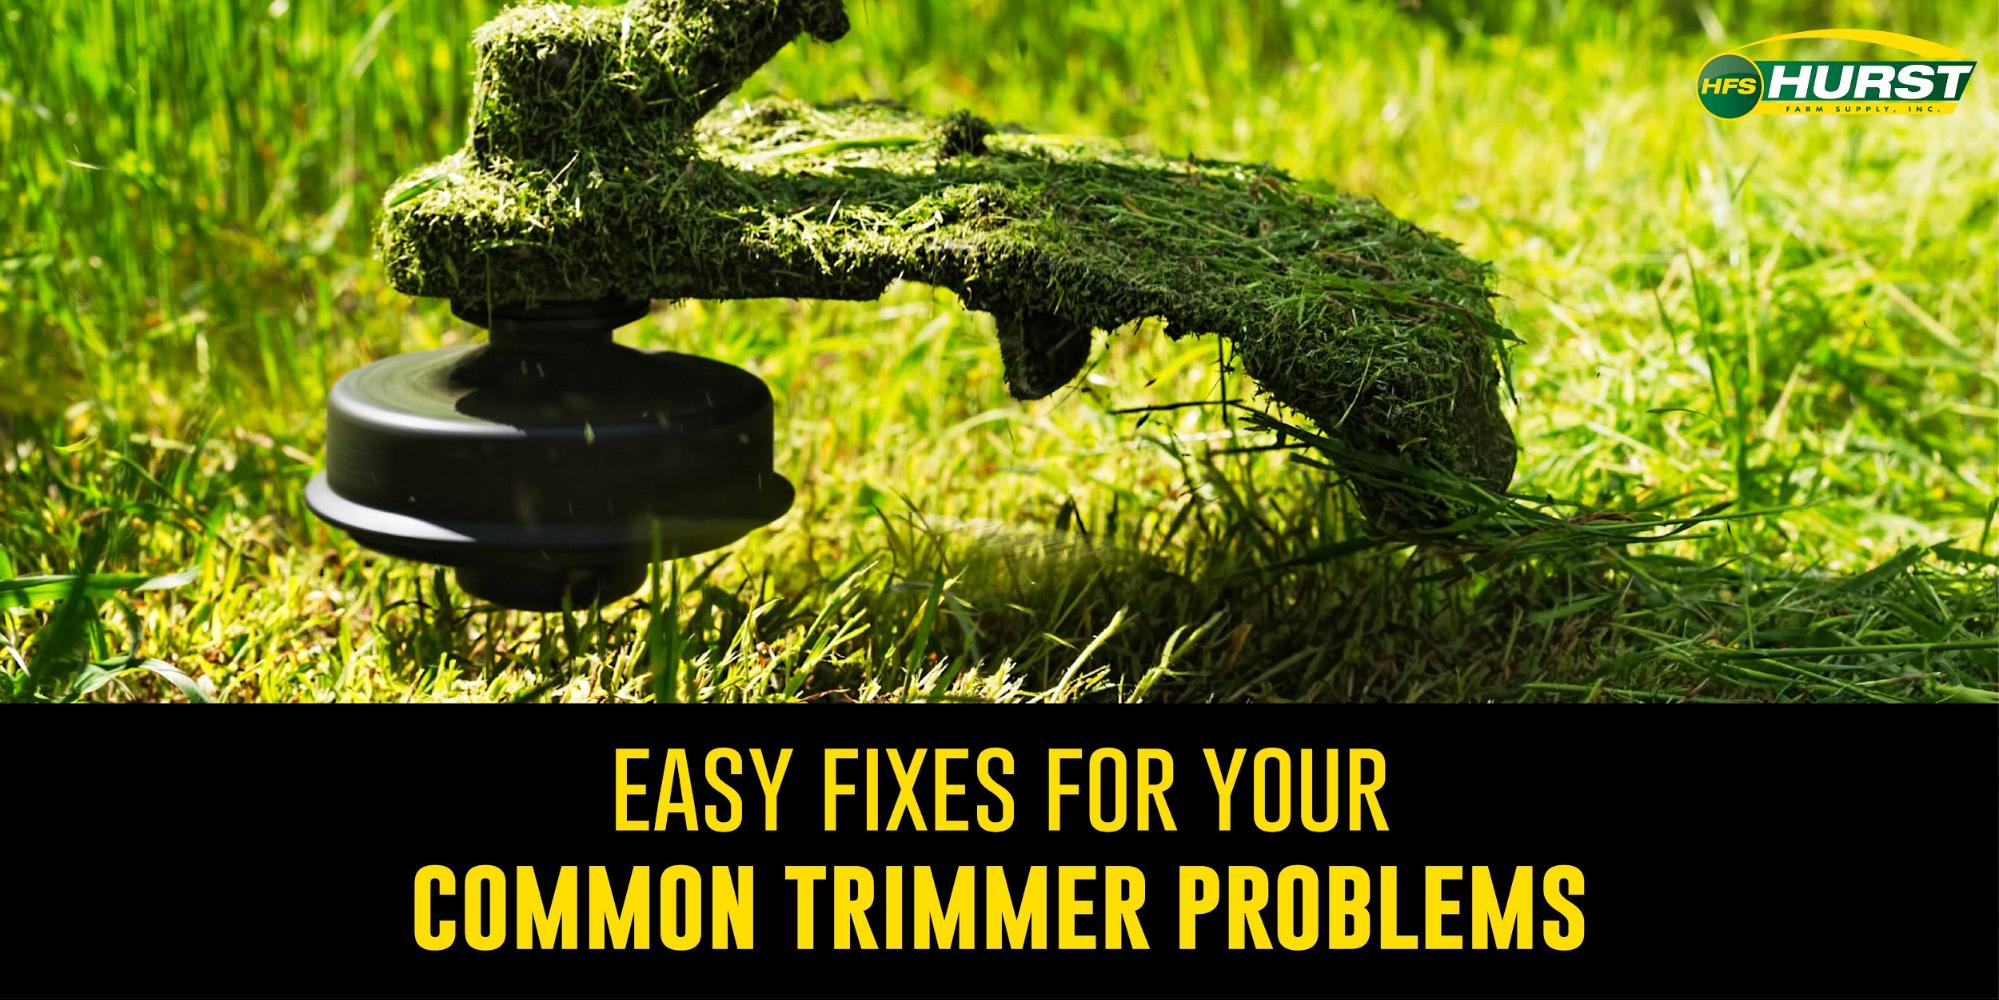 Easy Fixes for Your Common Trimmer Problems